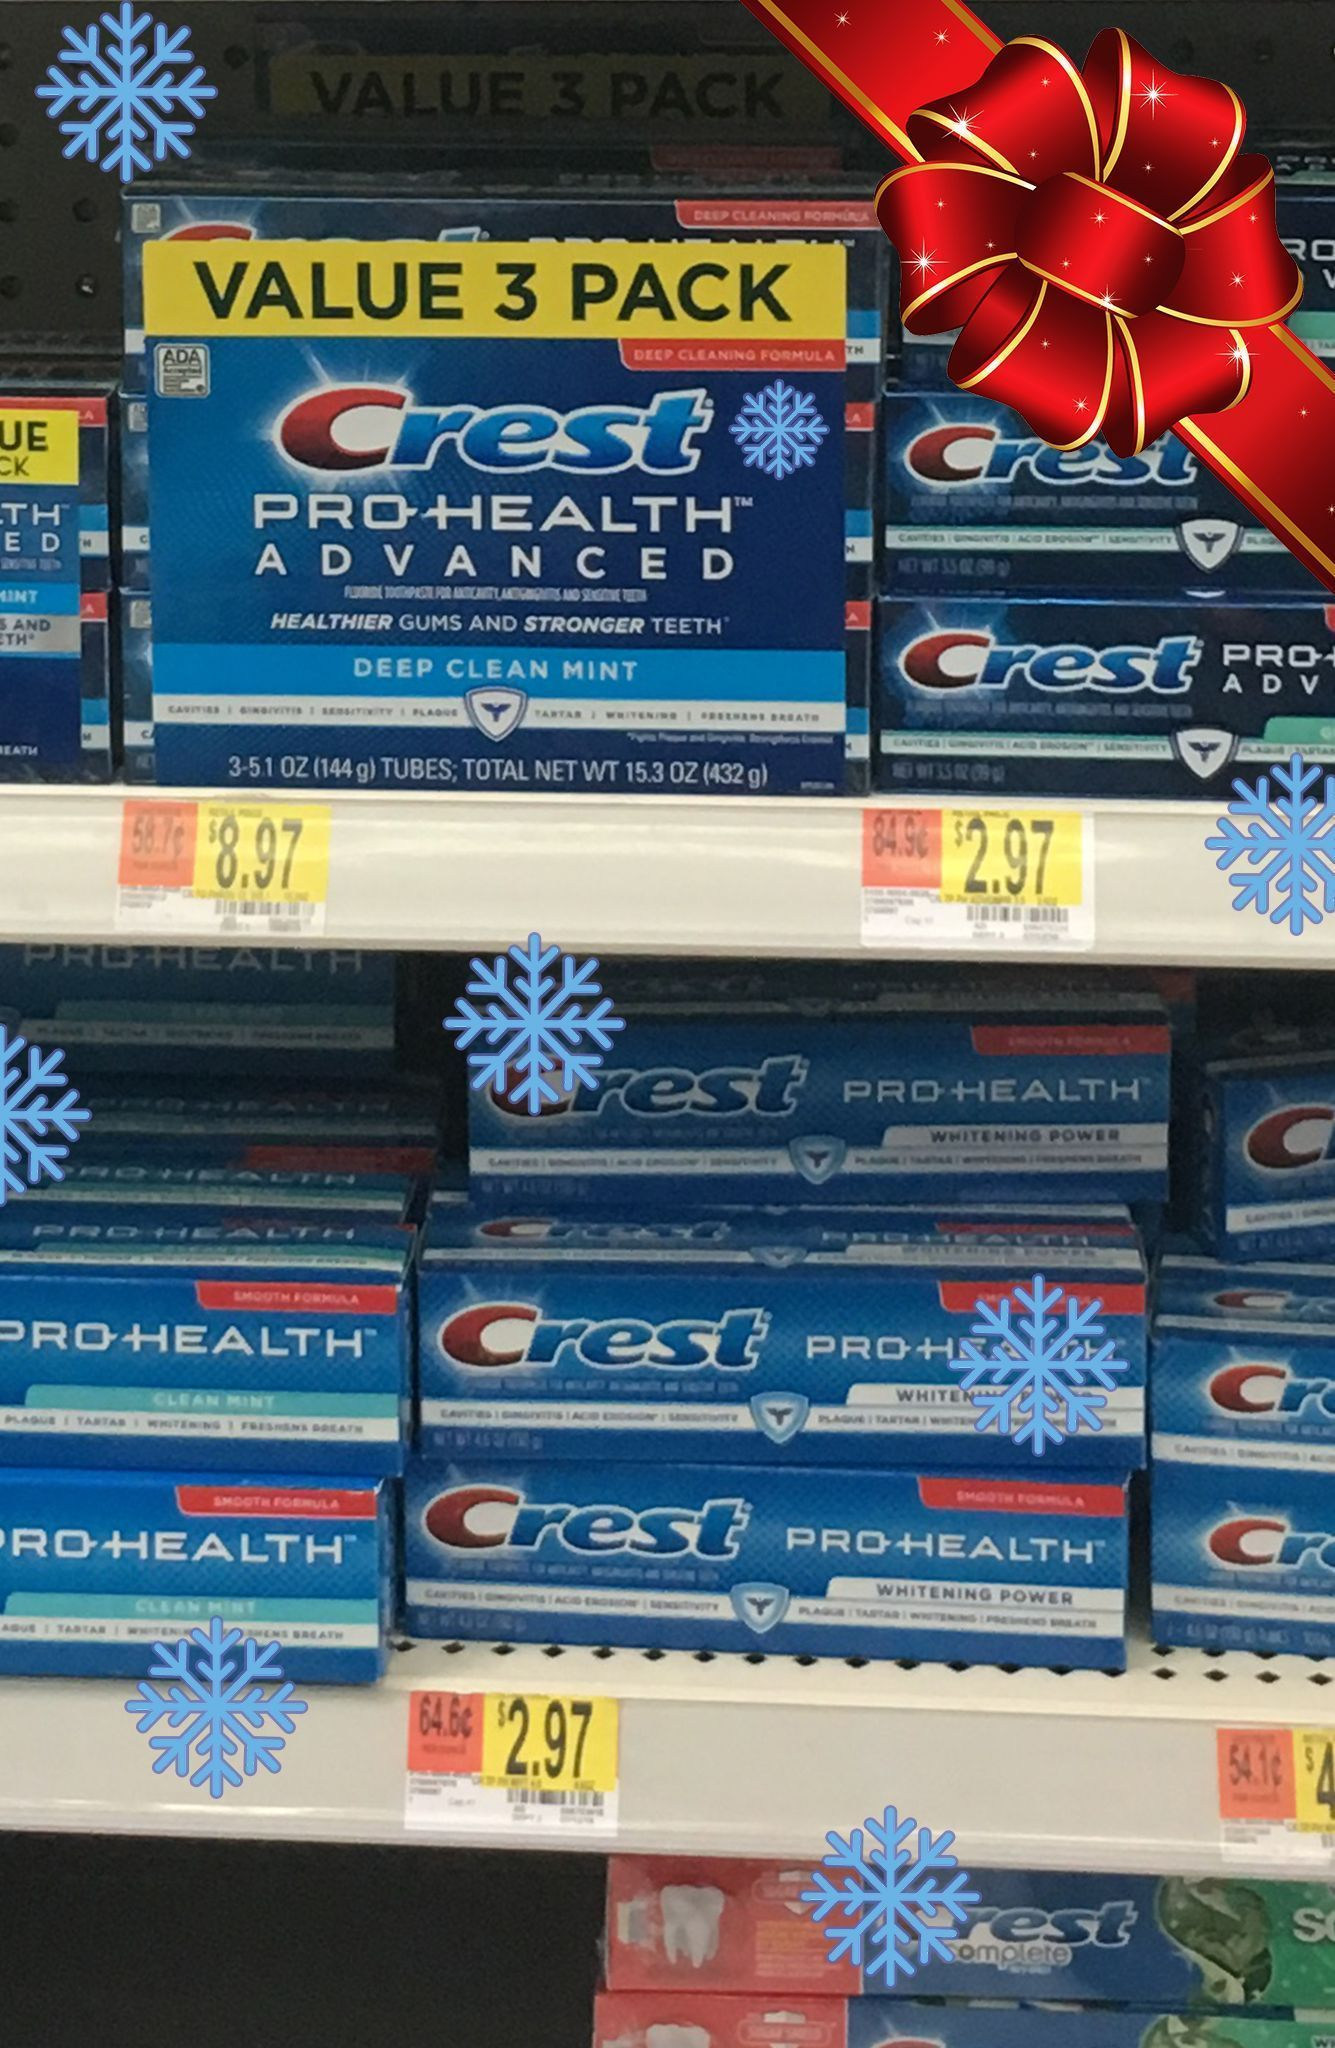 Crest Christmas Cookies Make The Holidays Bright Protect Your Teeth With Crest 2 00 Coupon For Walmart Tis Christmas Cookies Yummy Food Gum